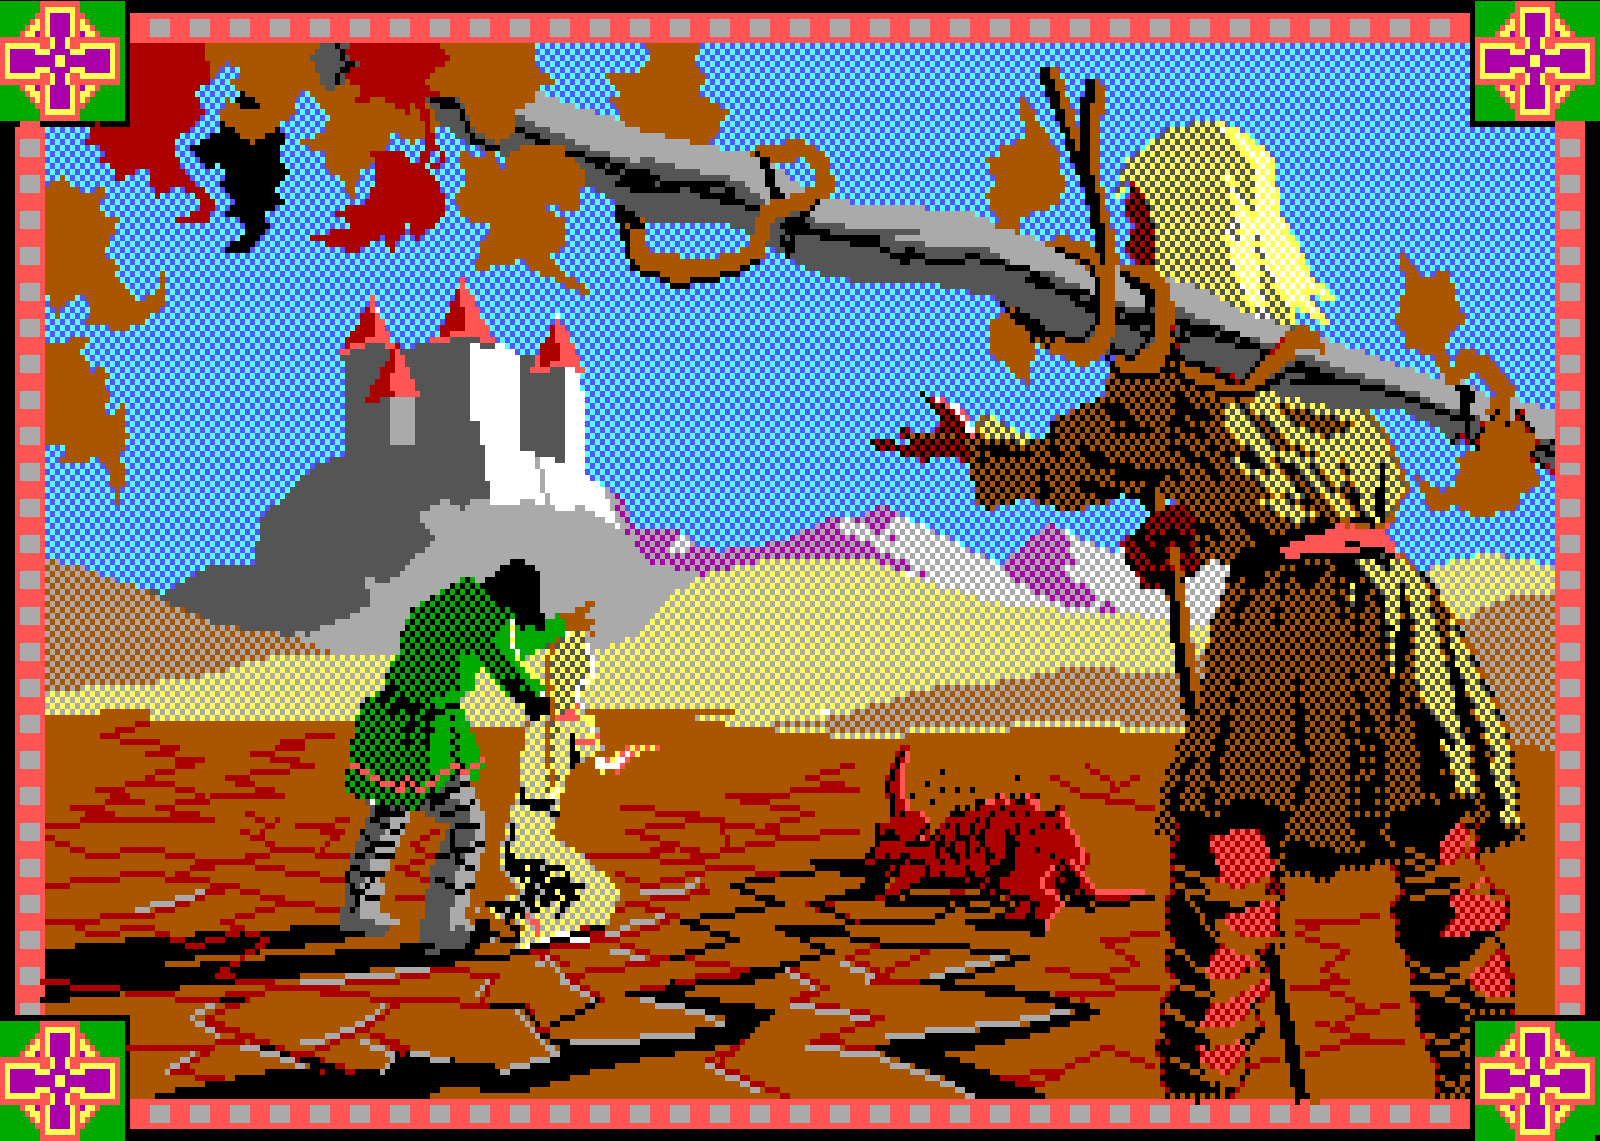 Conquests of Camelot: The Search for the Grail (1990) - Game